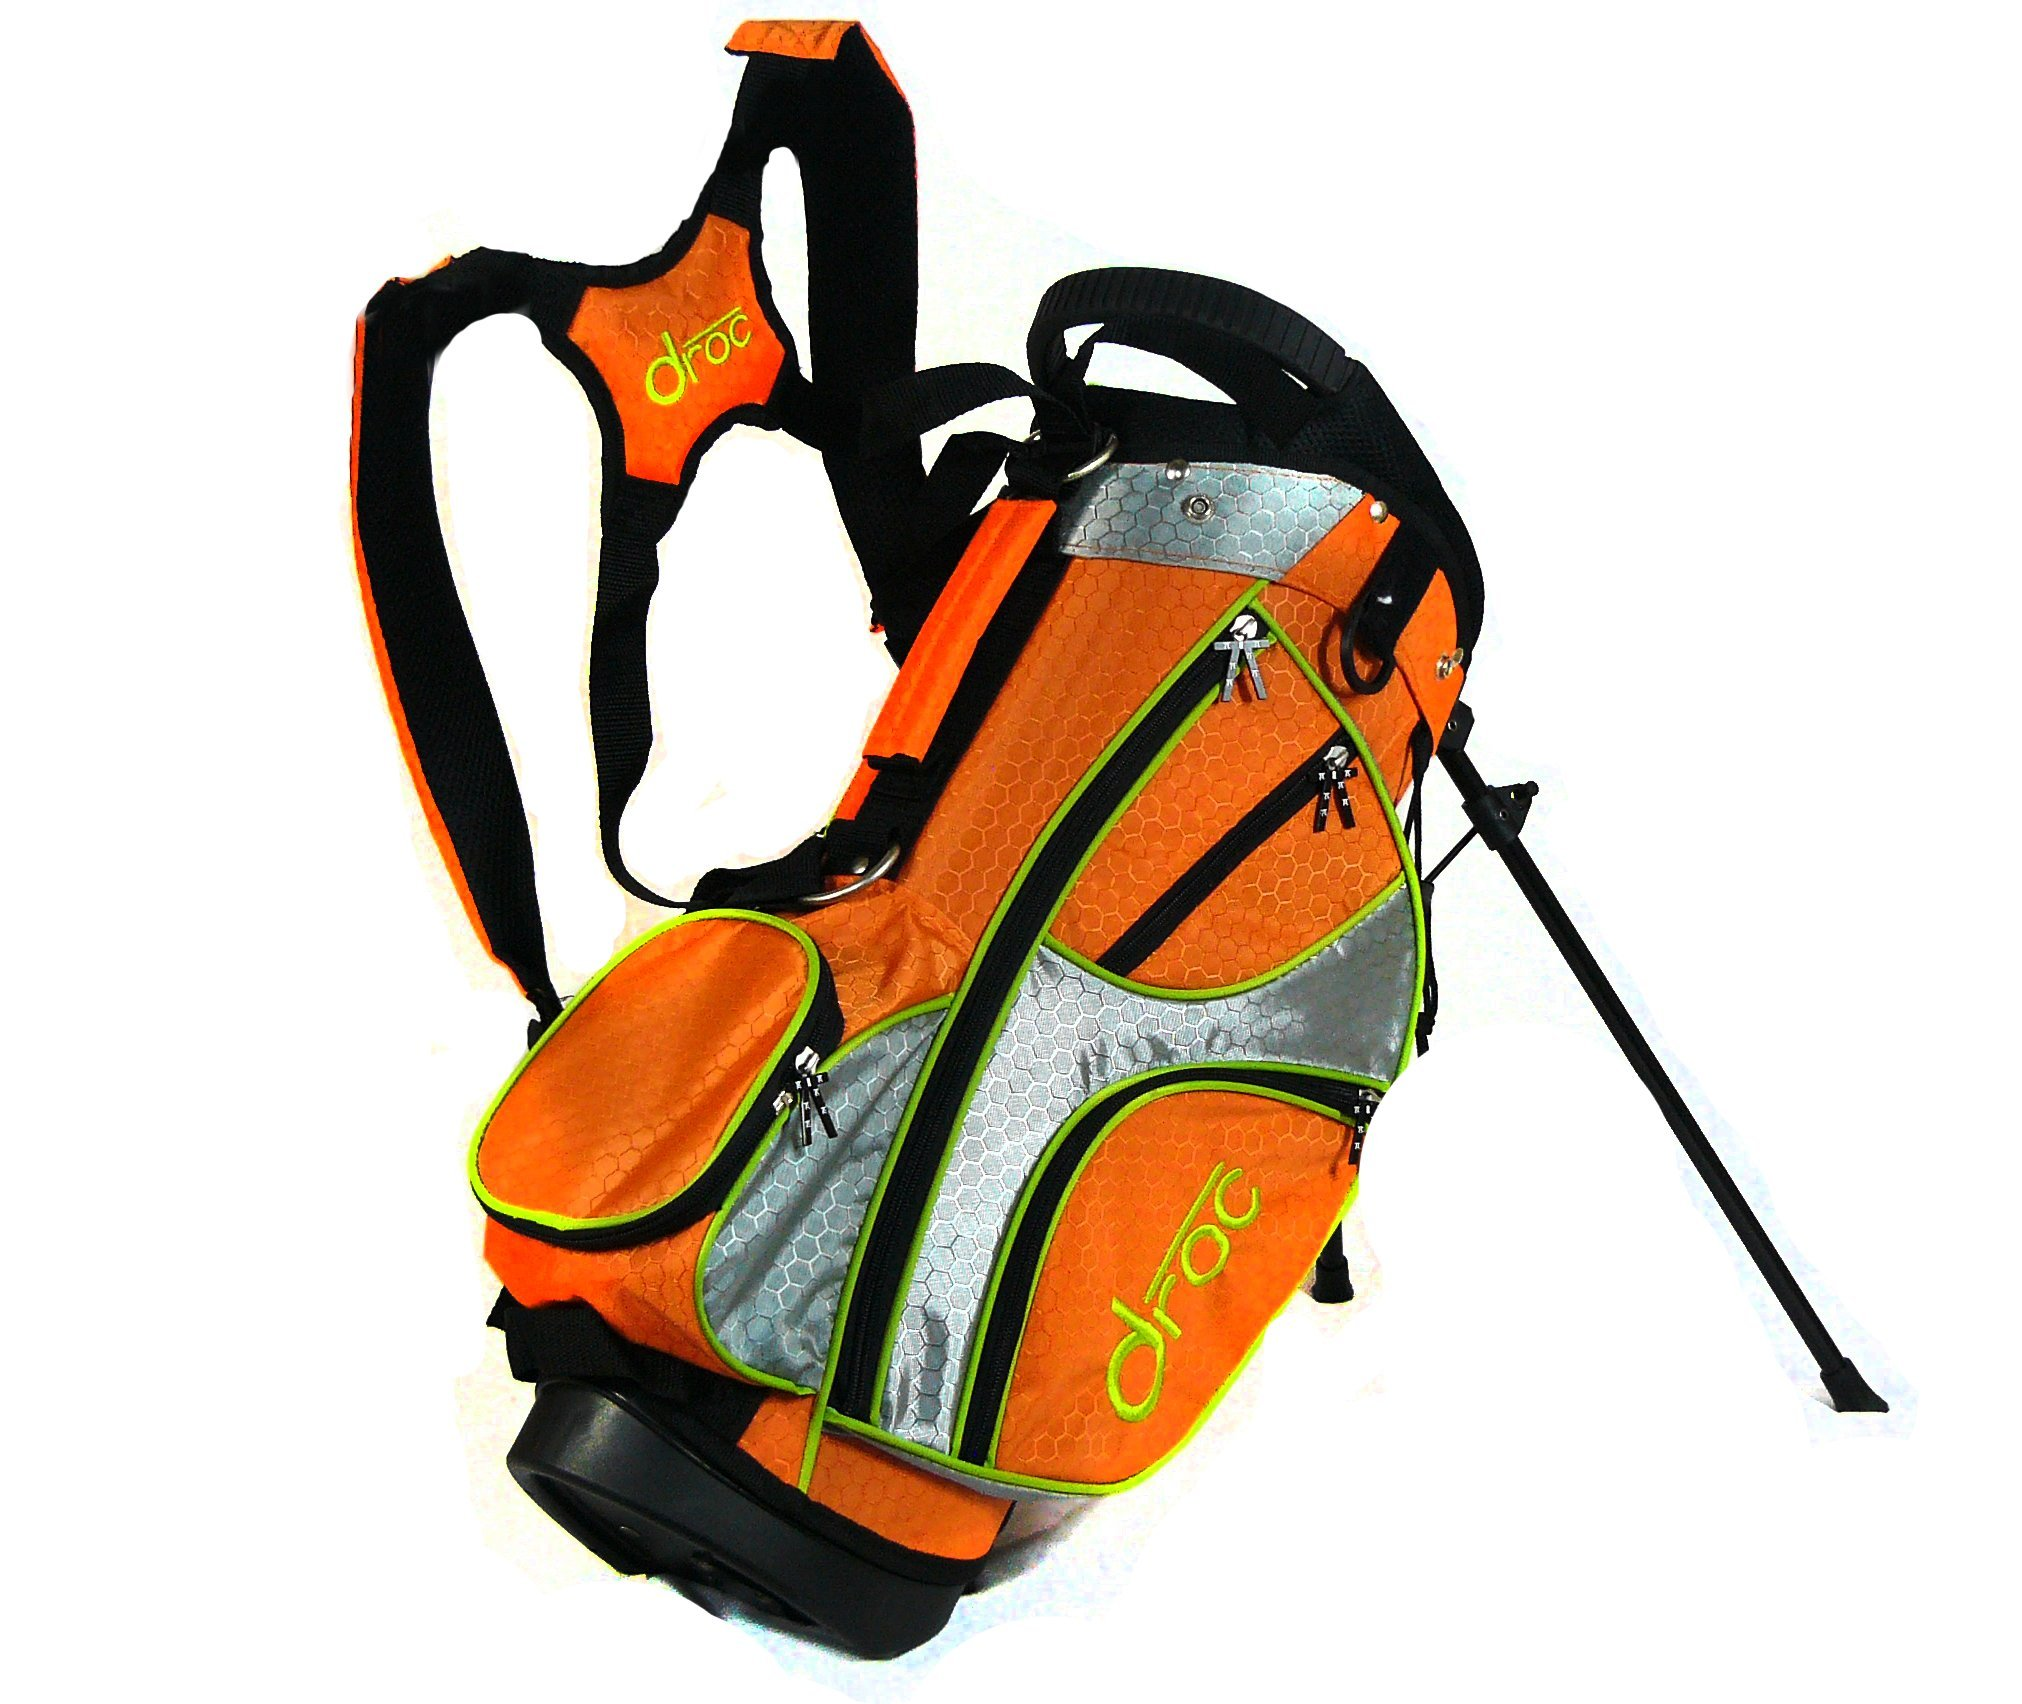 Droc - Mica Golf Bag Age 3 - 6 (22'' Tall)